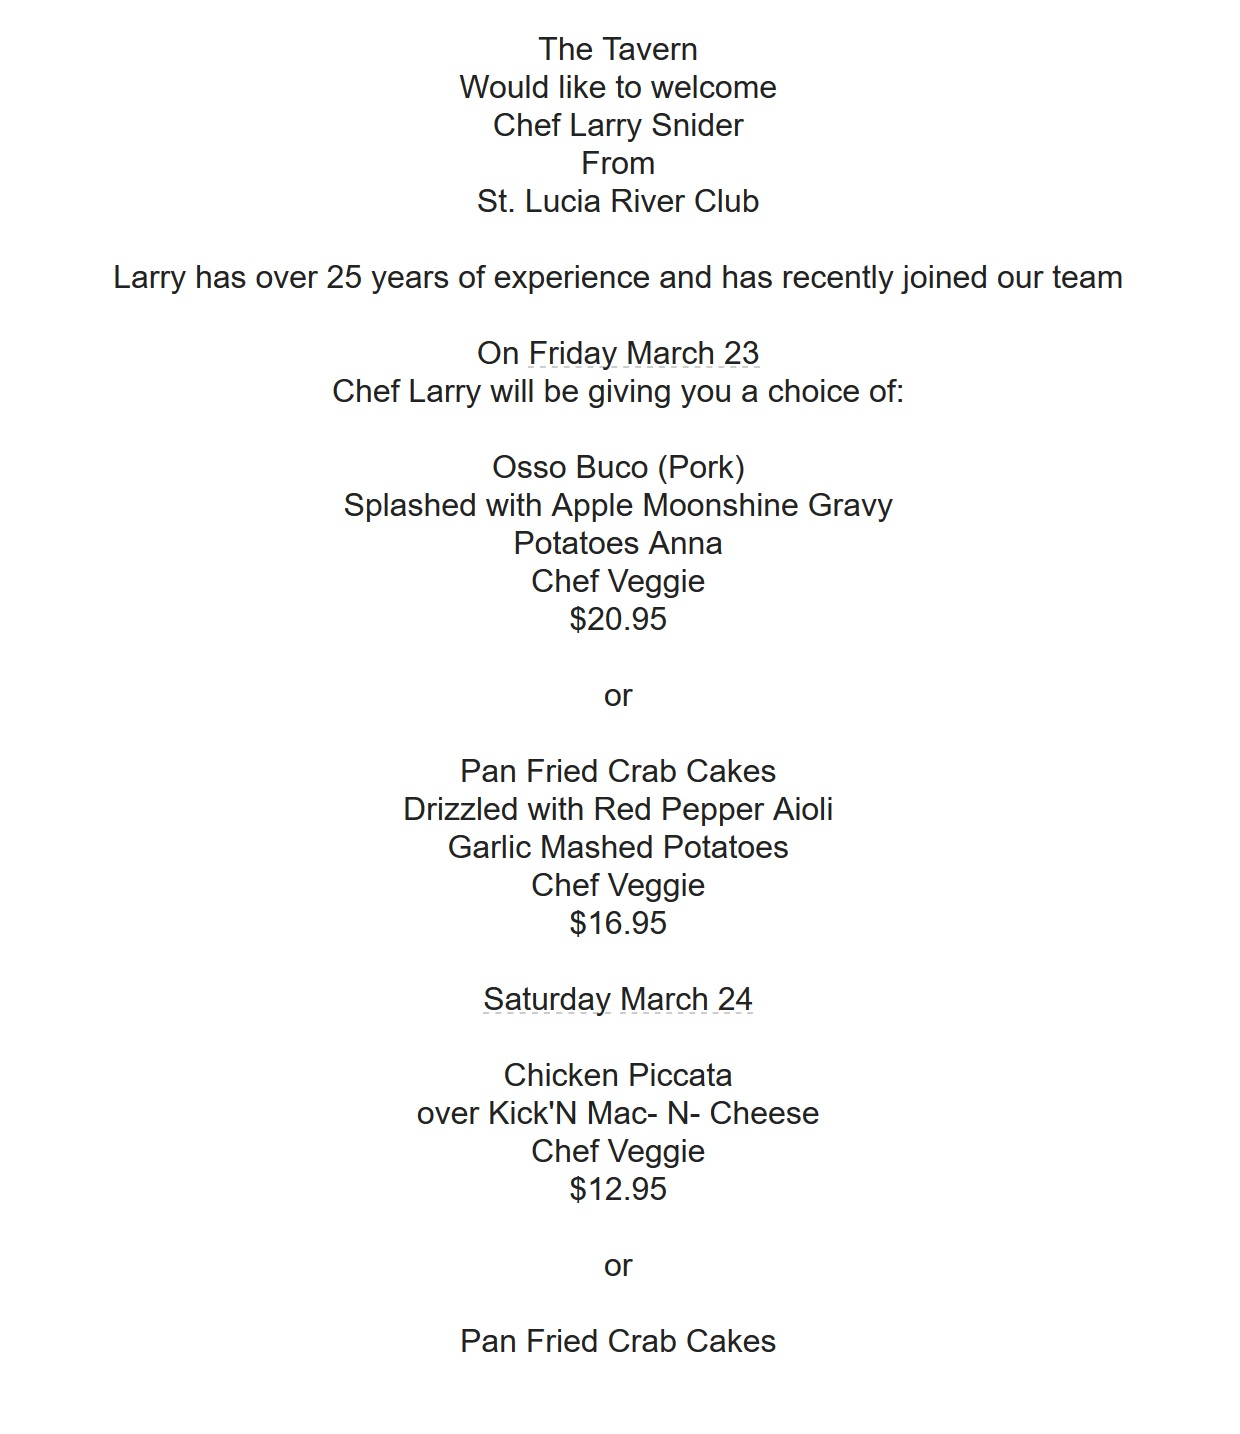 "This weekend's menu at the 19th Hole (yeah...I know..""The Tavern"")"